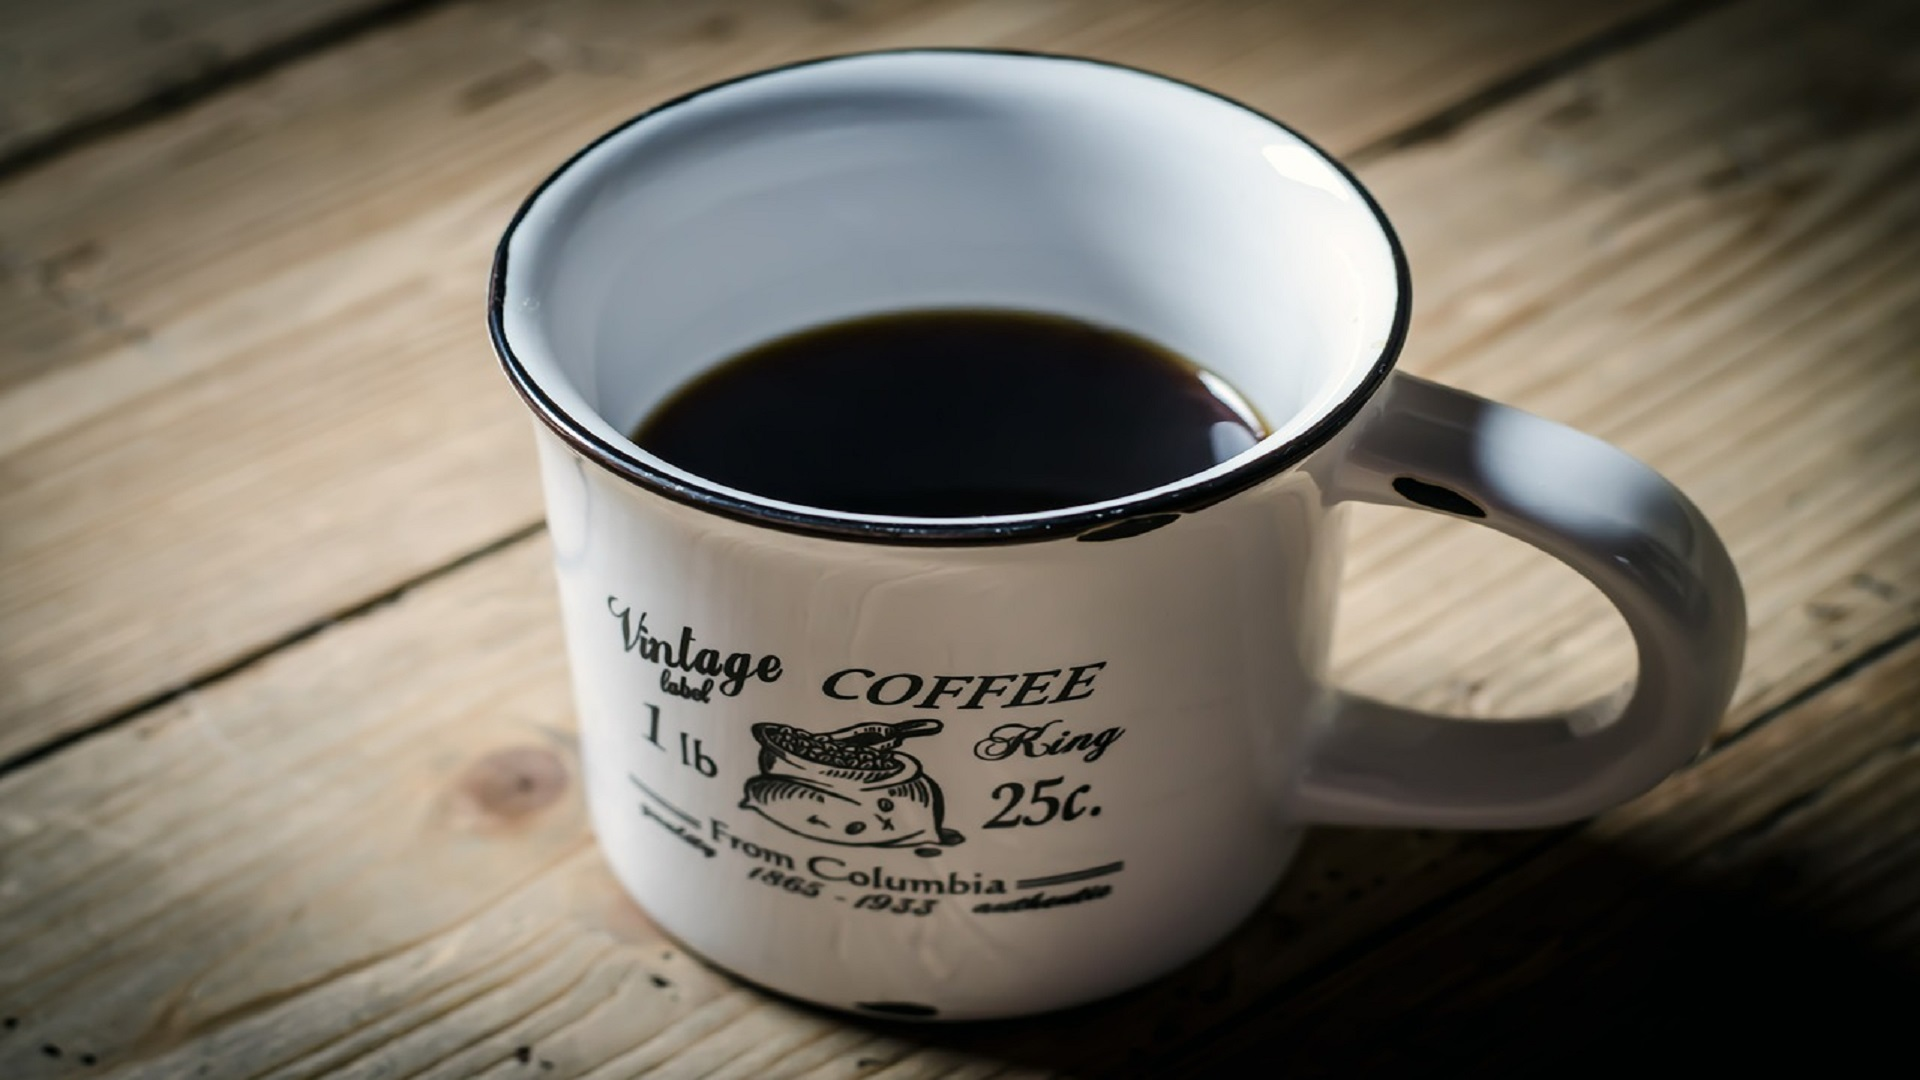 Morning-French-Coffee-Cup-High-Resolution-Wallpaper-Free ...